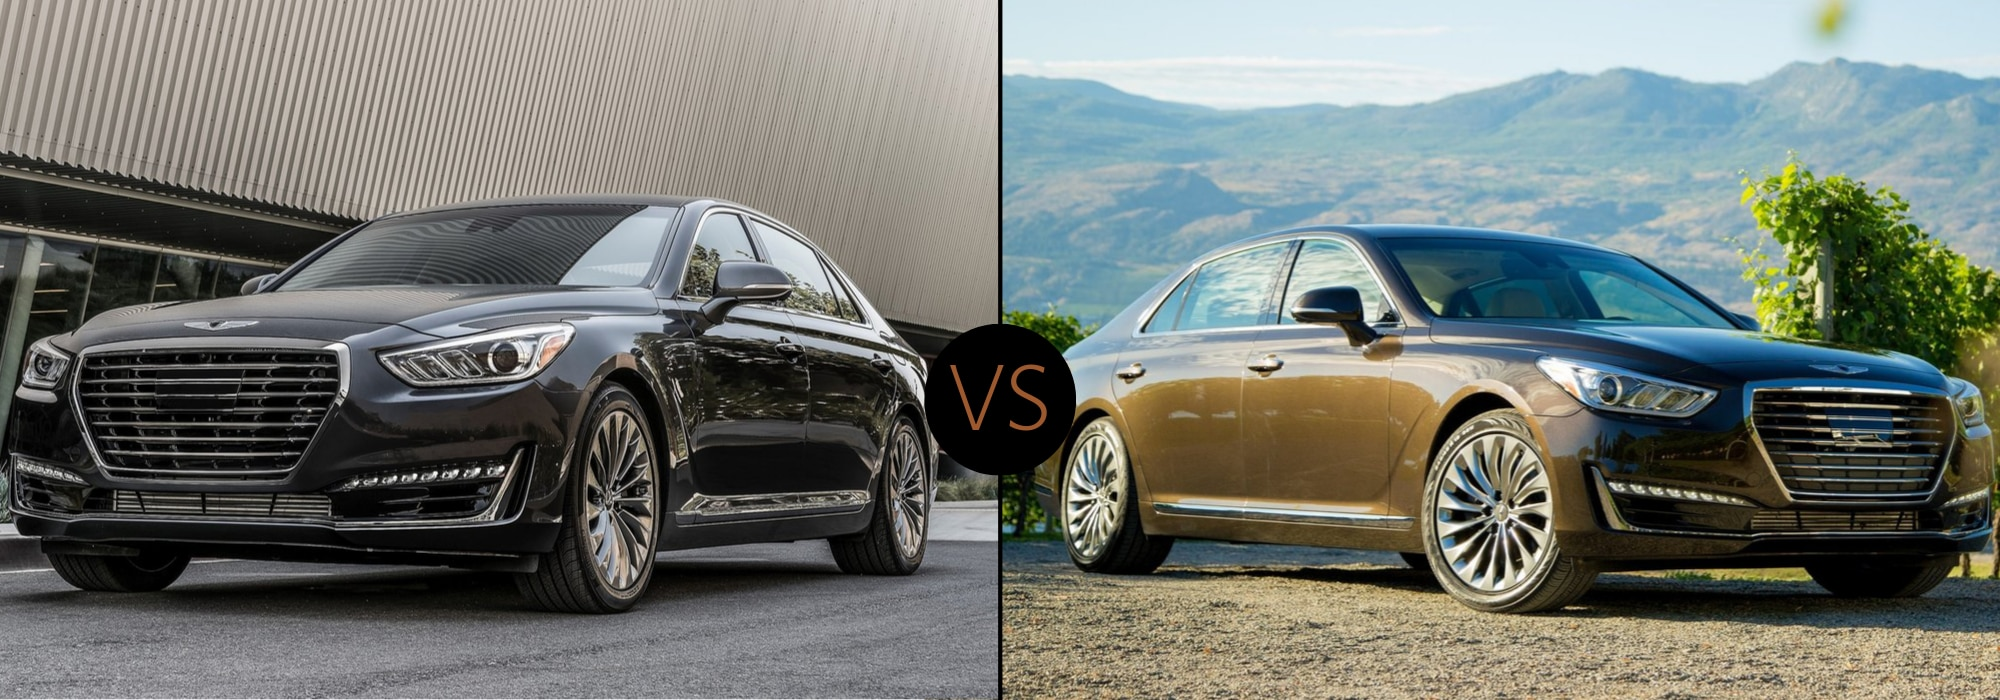 2020 Genesis G90 compared to the 2019 Genesis G90 exterior